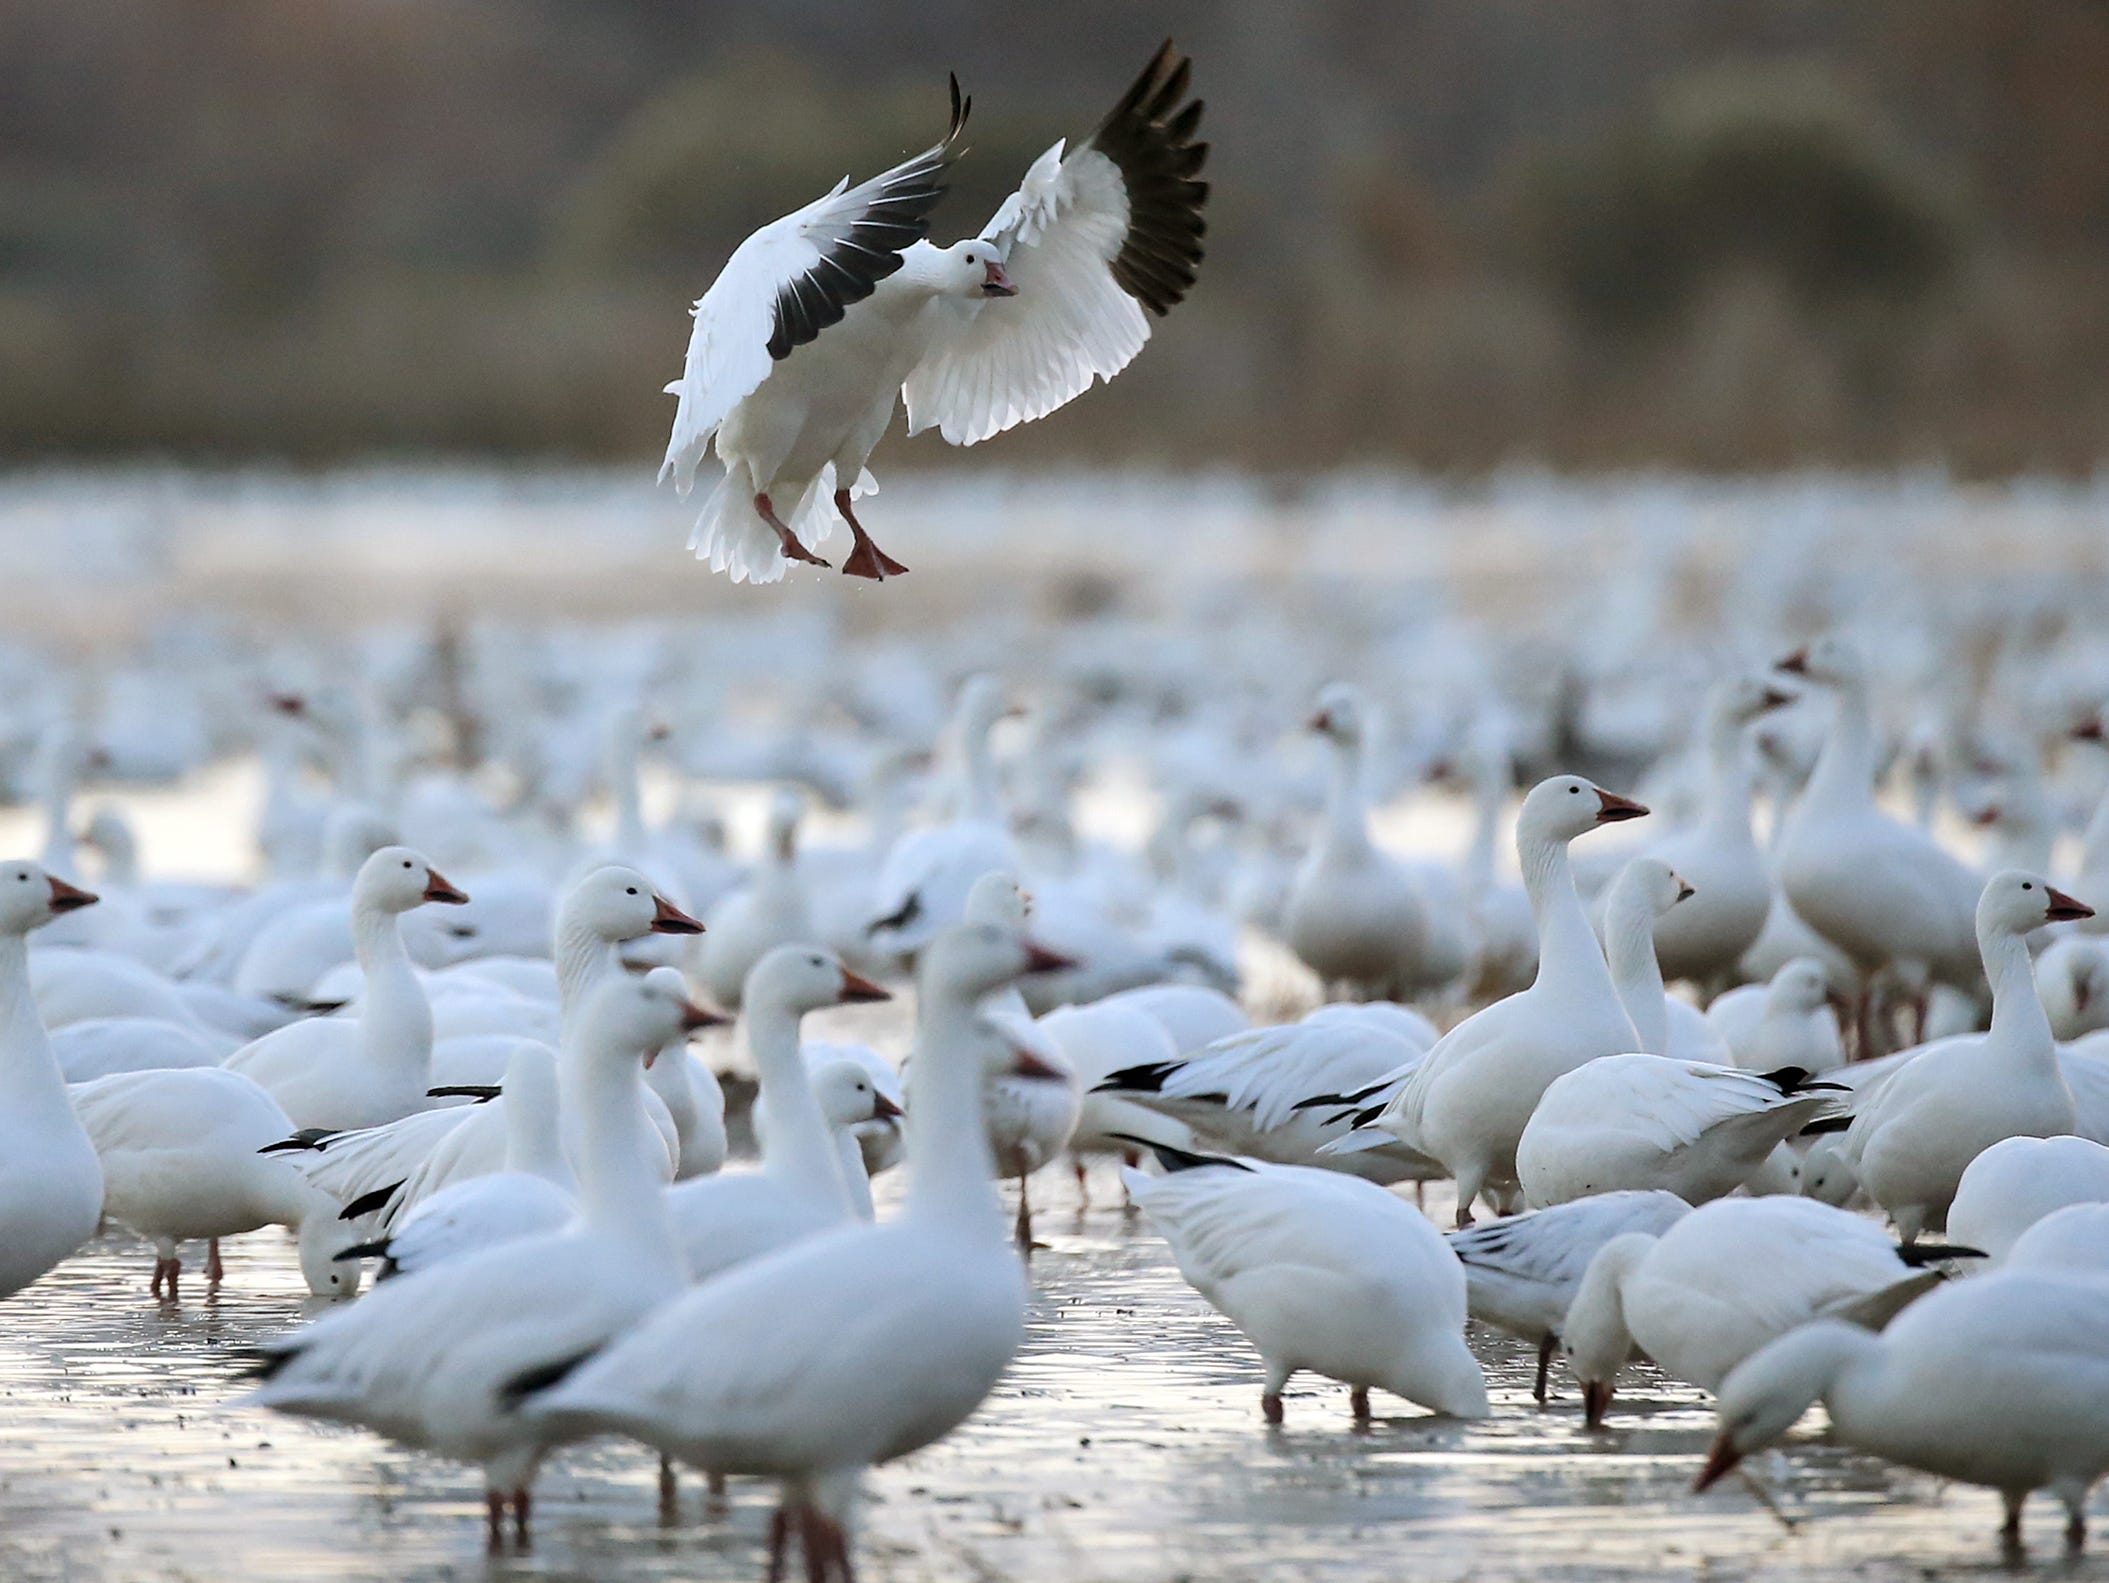 A Snow Goose lands carefully in a sea of geese at Bosque del Apache National Wildlife Refuge.